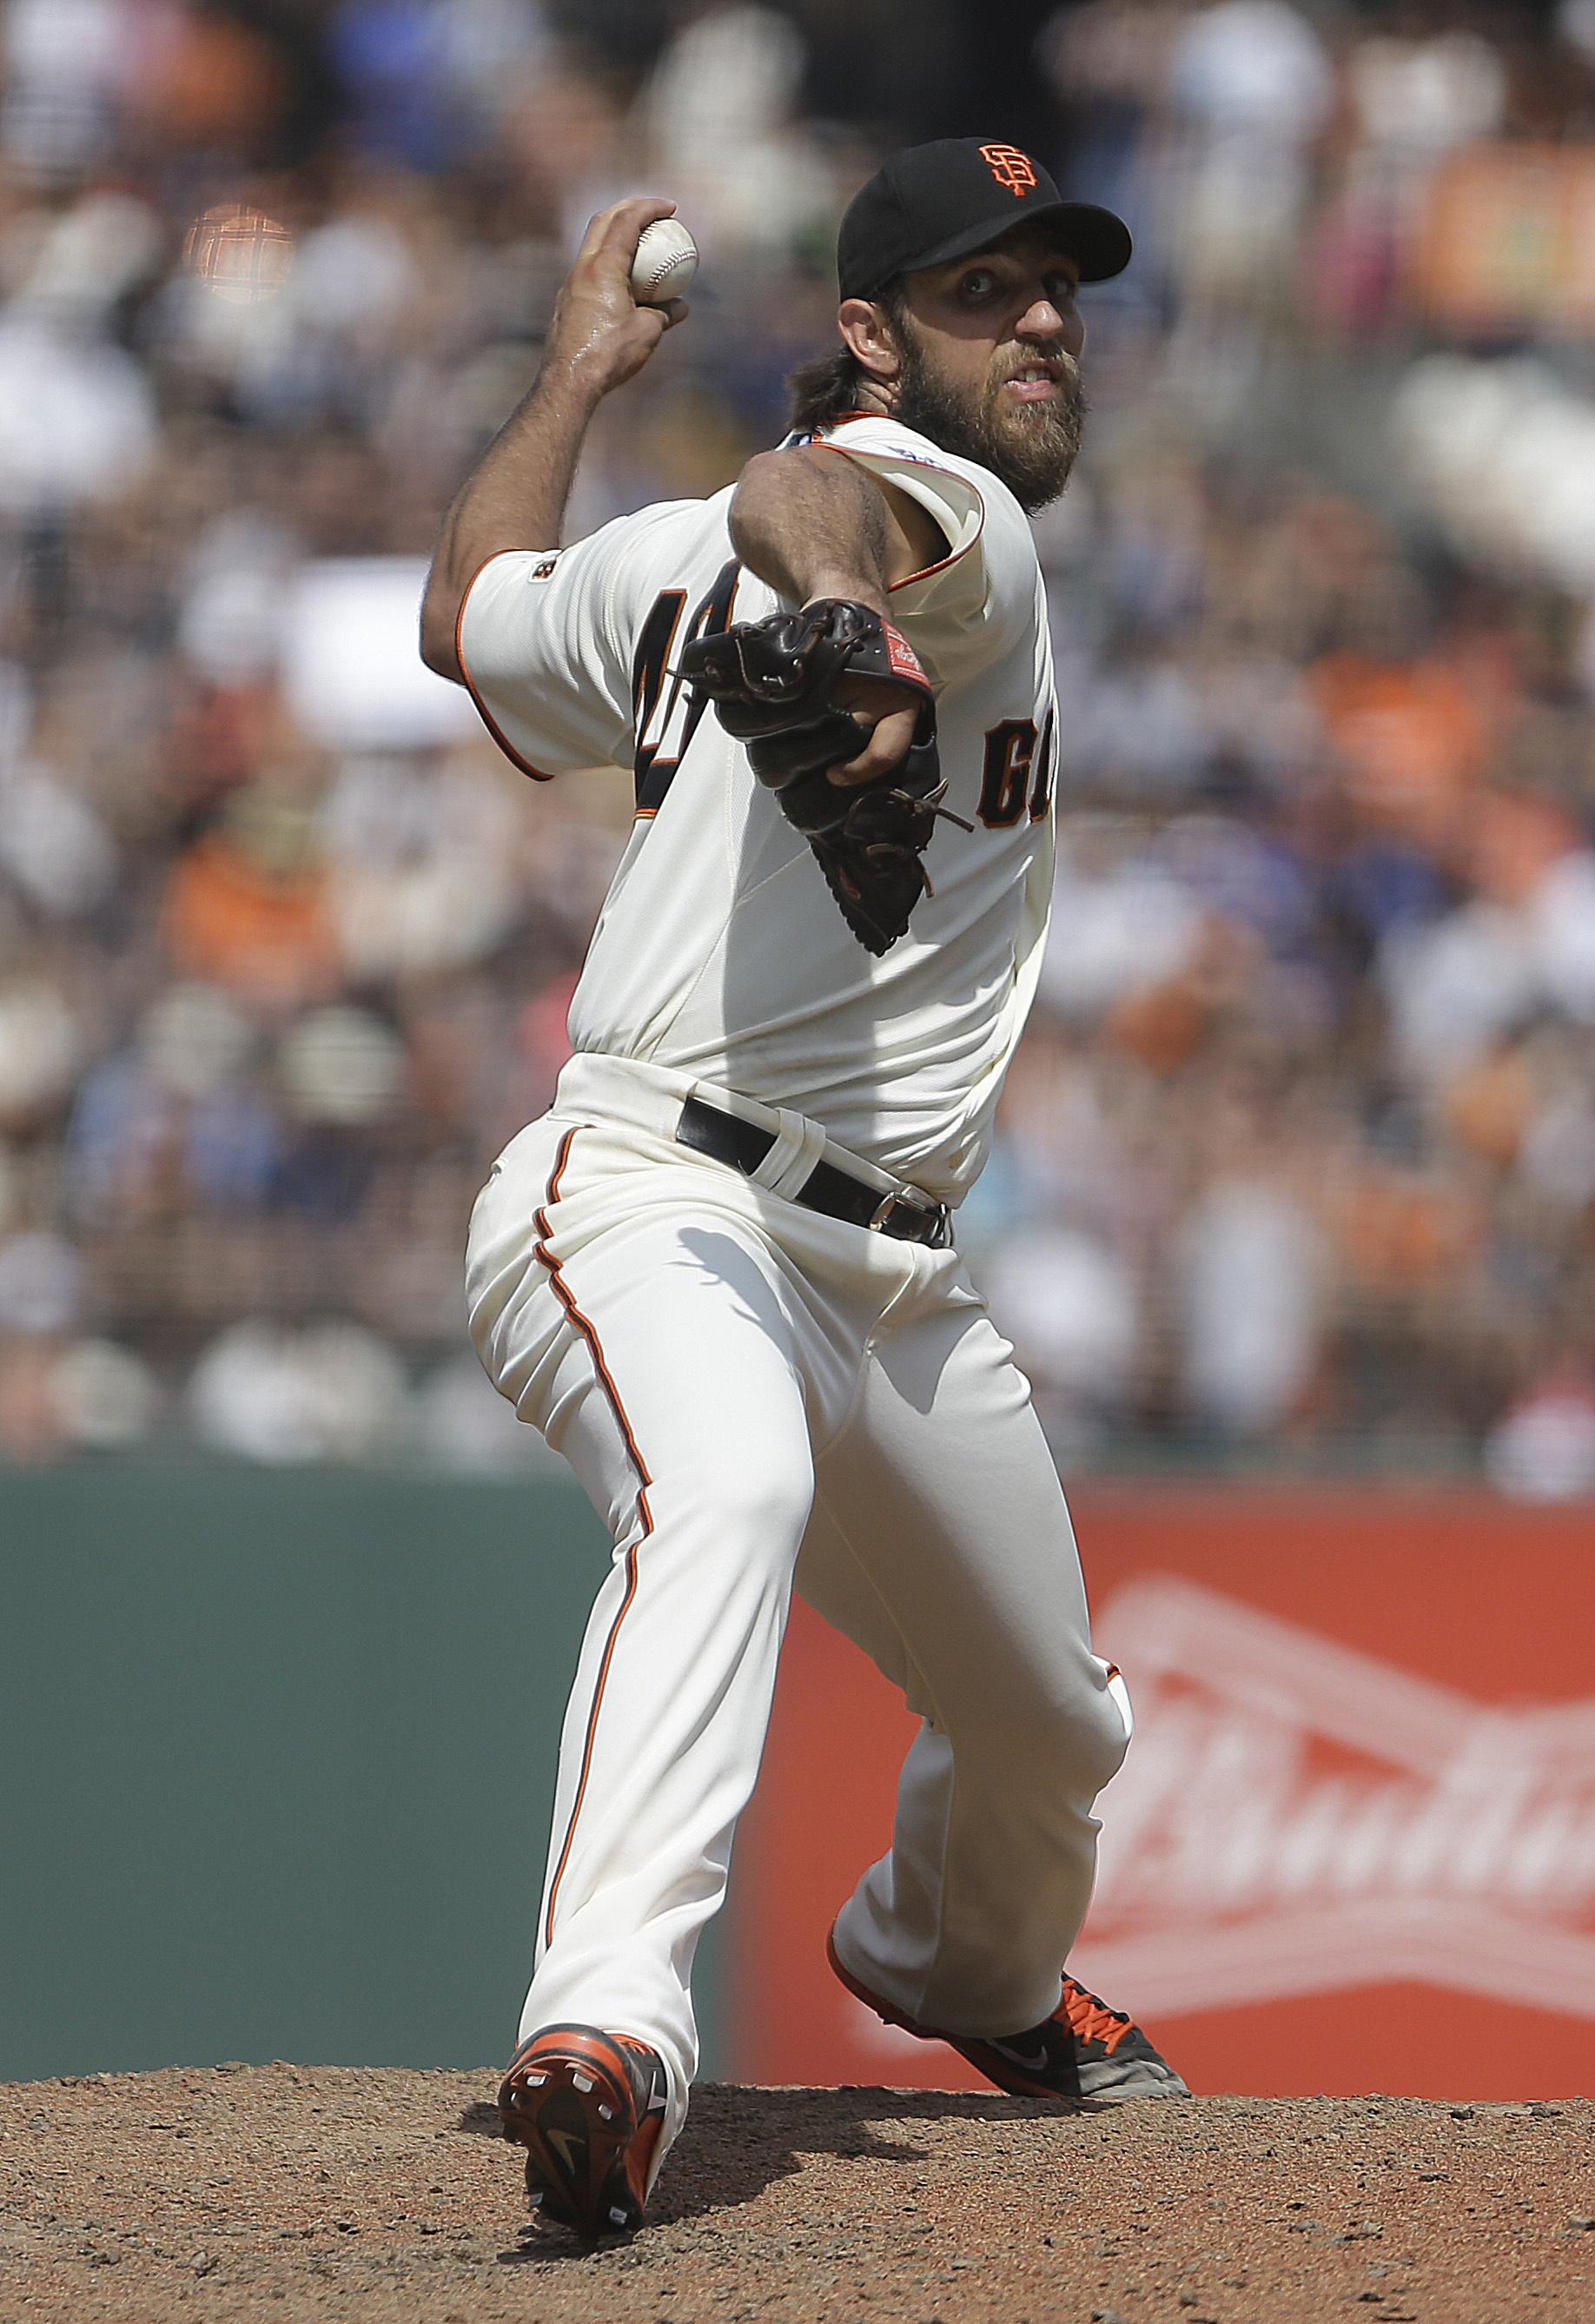 San Francisco Giants pitcher Madison Bumgarner works against the Washington Nationals in the ninth inning of a baseball game Sunday, Aug. 16, 2015, in San Francisco. (AP Photo/Ben Margot)